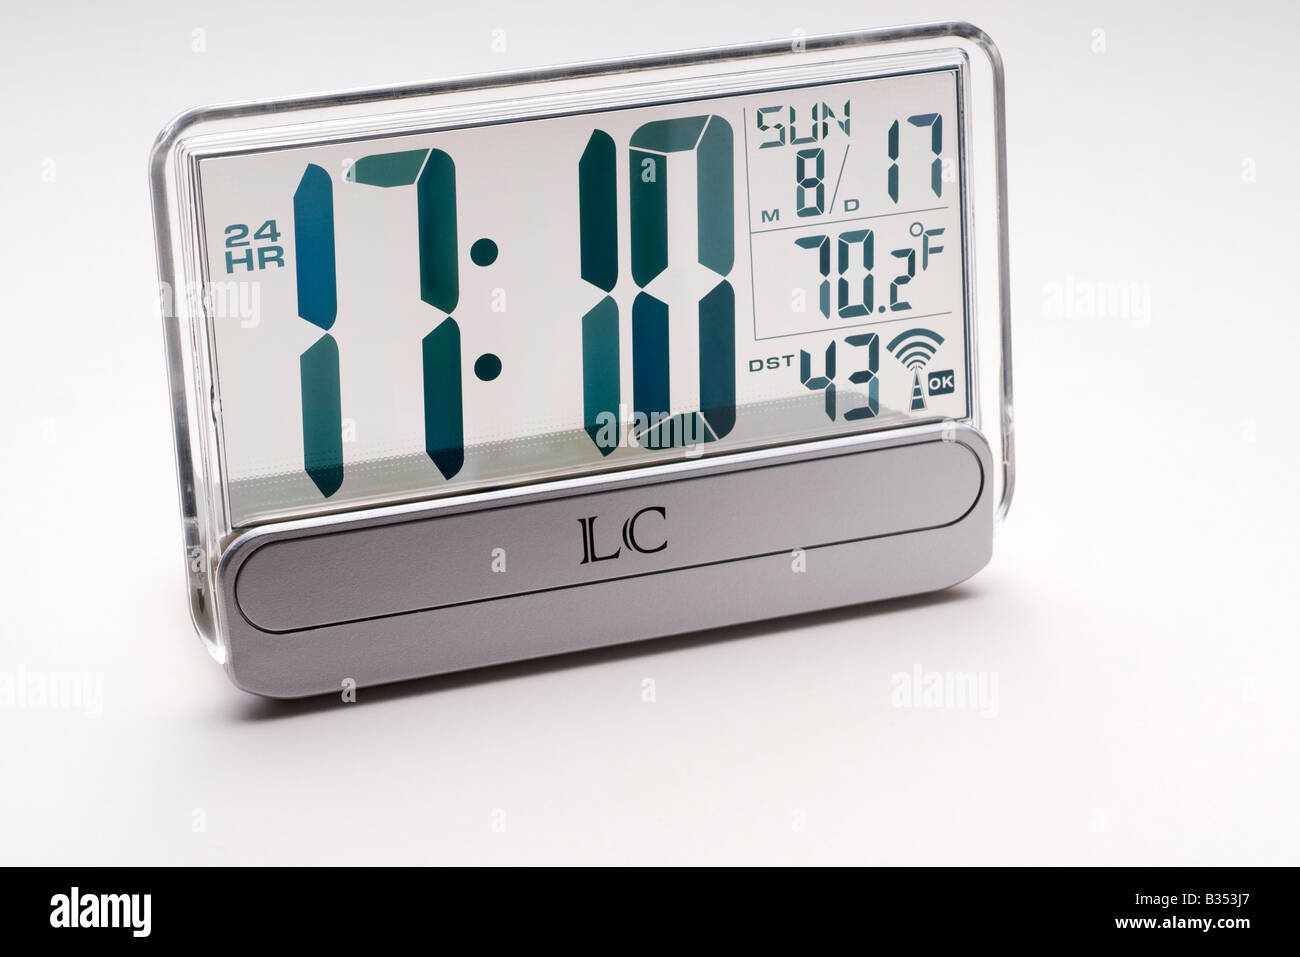 clear radio controlled alarm clock with thermometer stock photo royalty free image 19166959. Black Bedroom Furniture Sets. Home Design Ideas